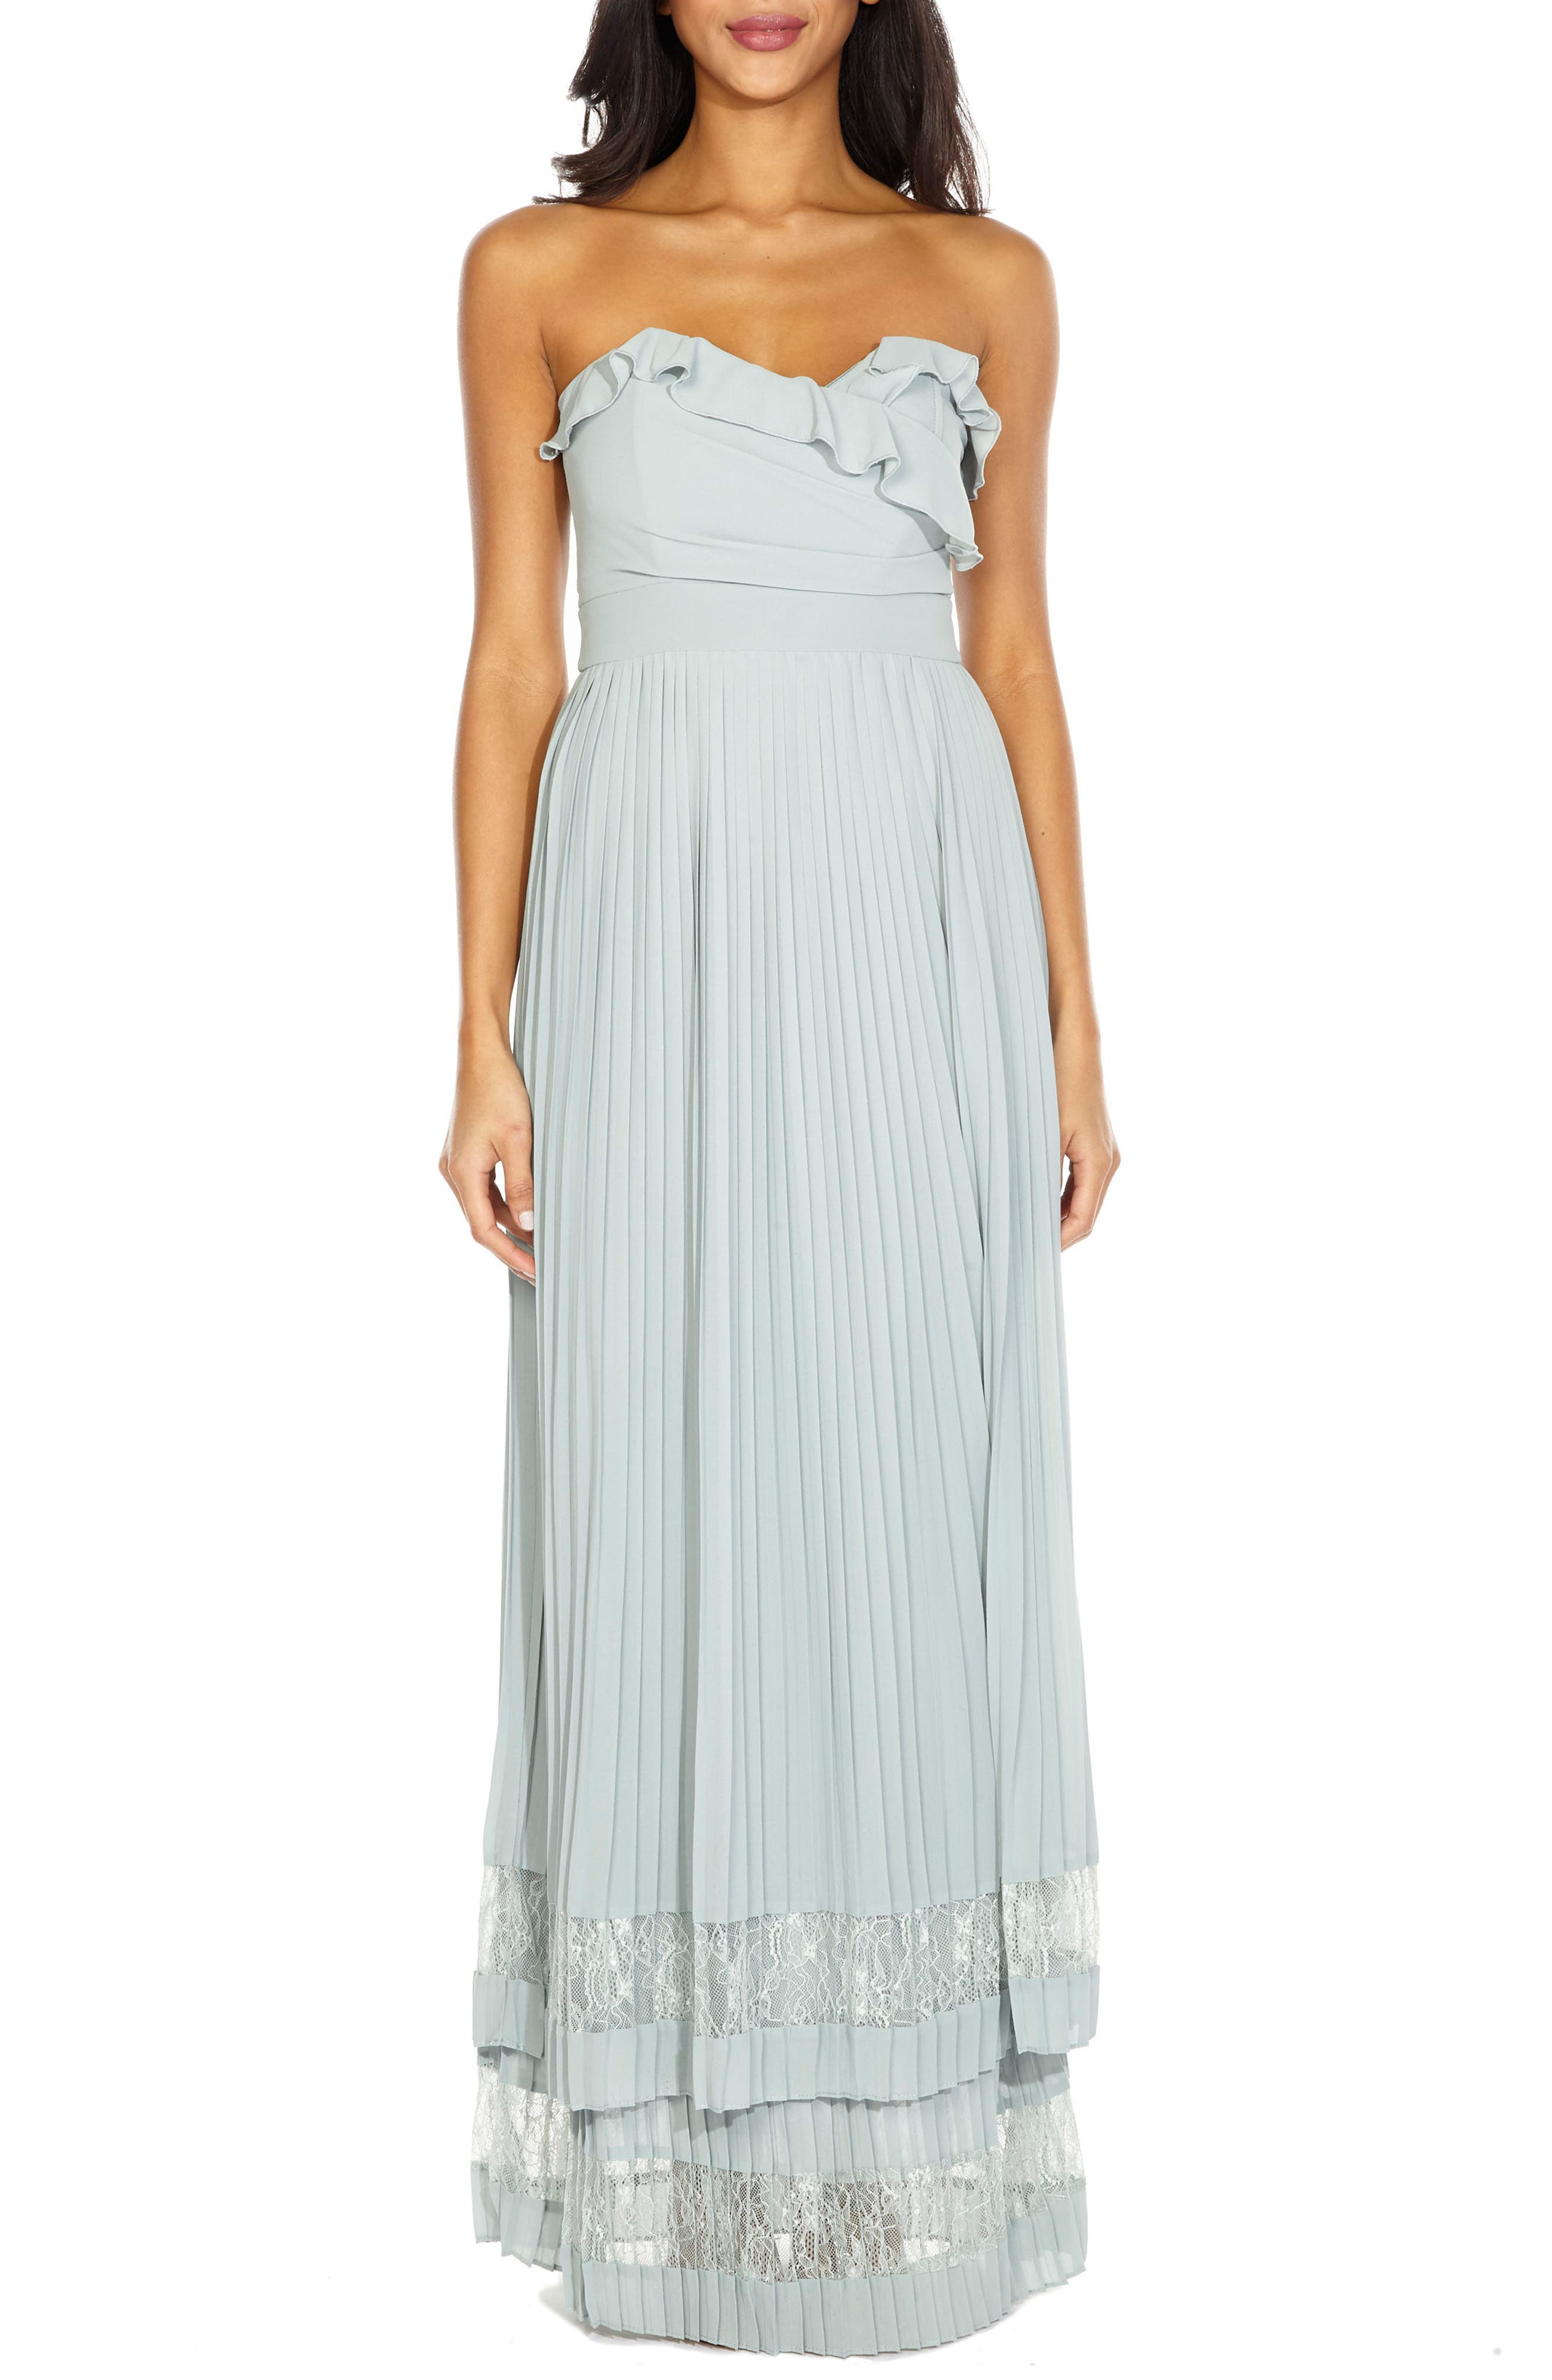 Akira Strapless Gown,                         Main,                         color, Pastel Green